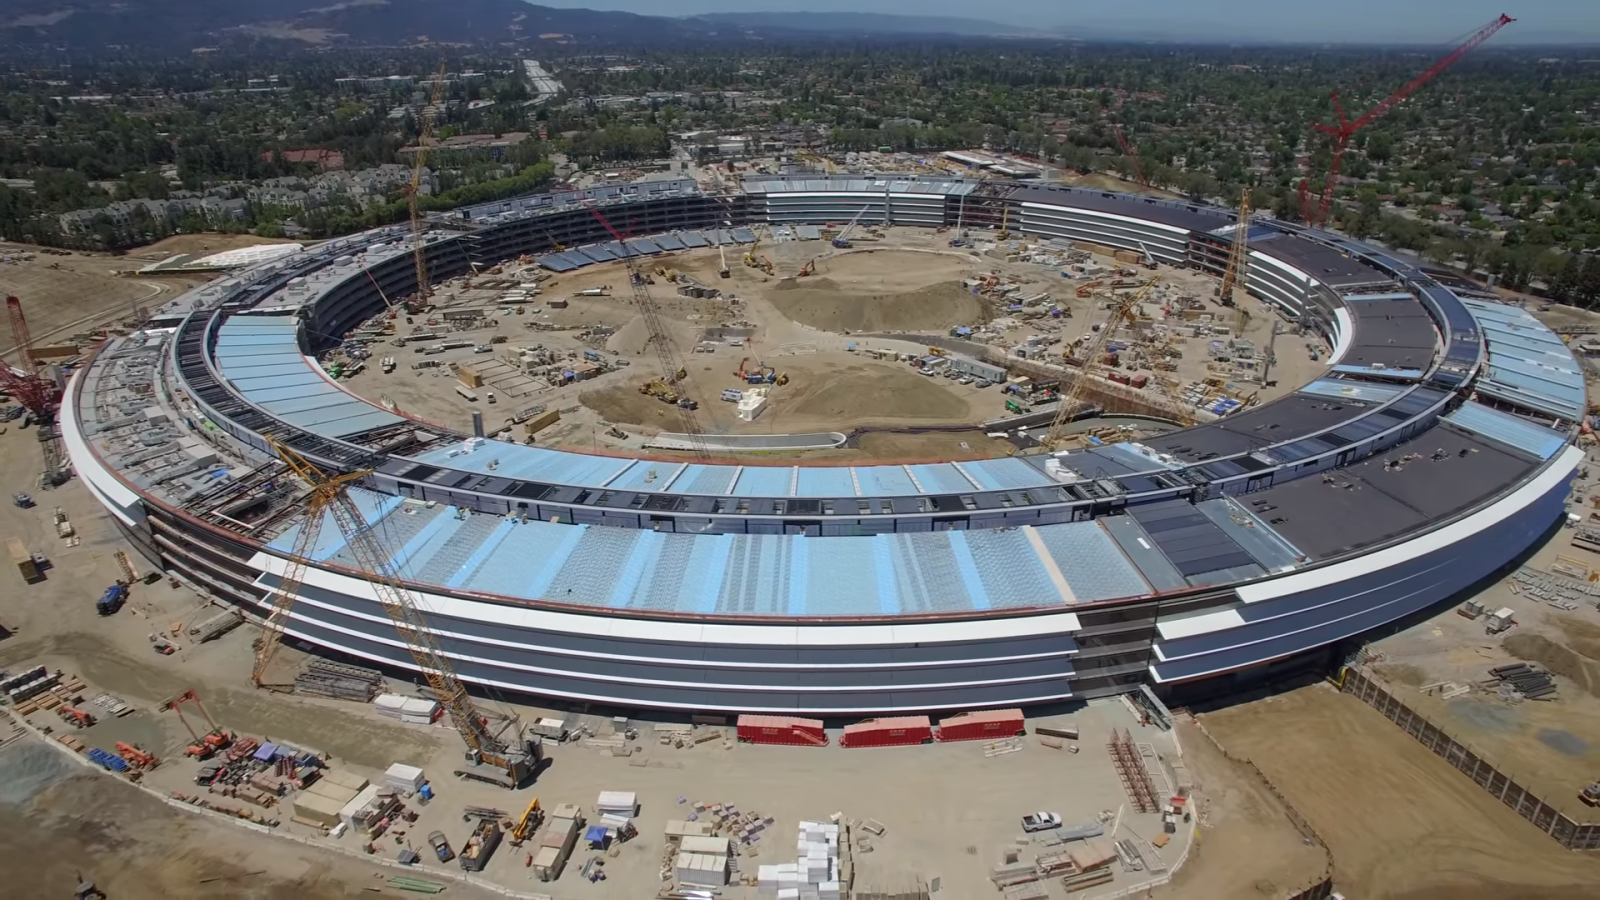 new apple office cupertino. Apple Campus 2: New DJI Drone 4K Video Shows \u0027Spaceship\u0027 HQ Six Months From Completion Office Cupertino